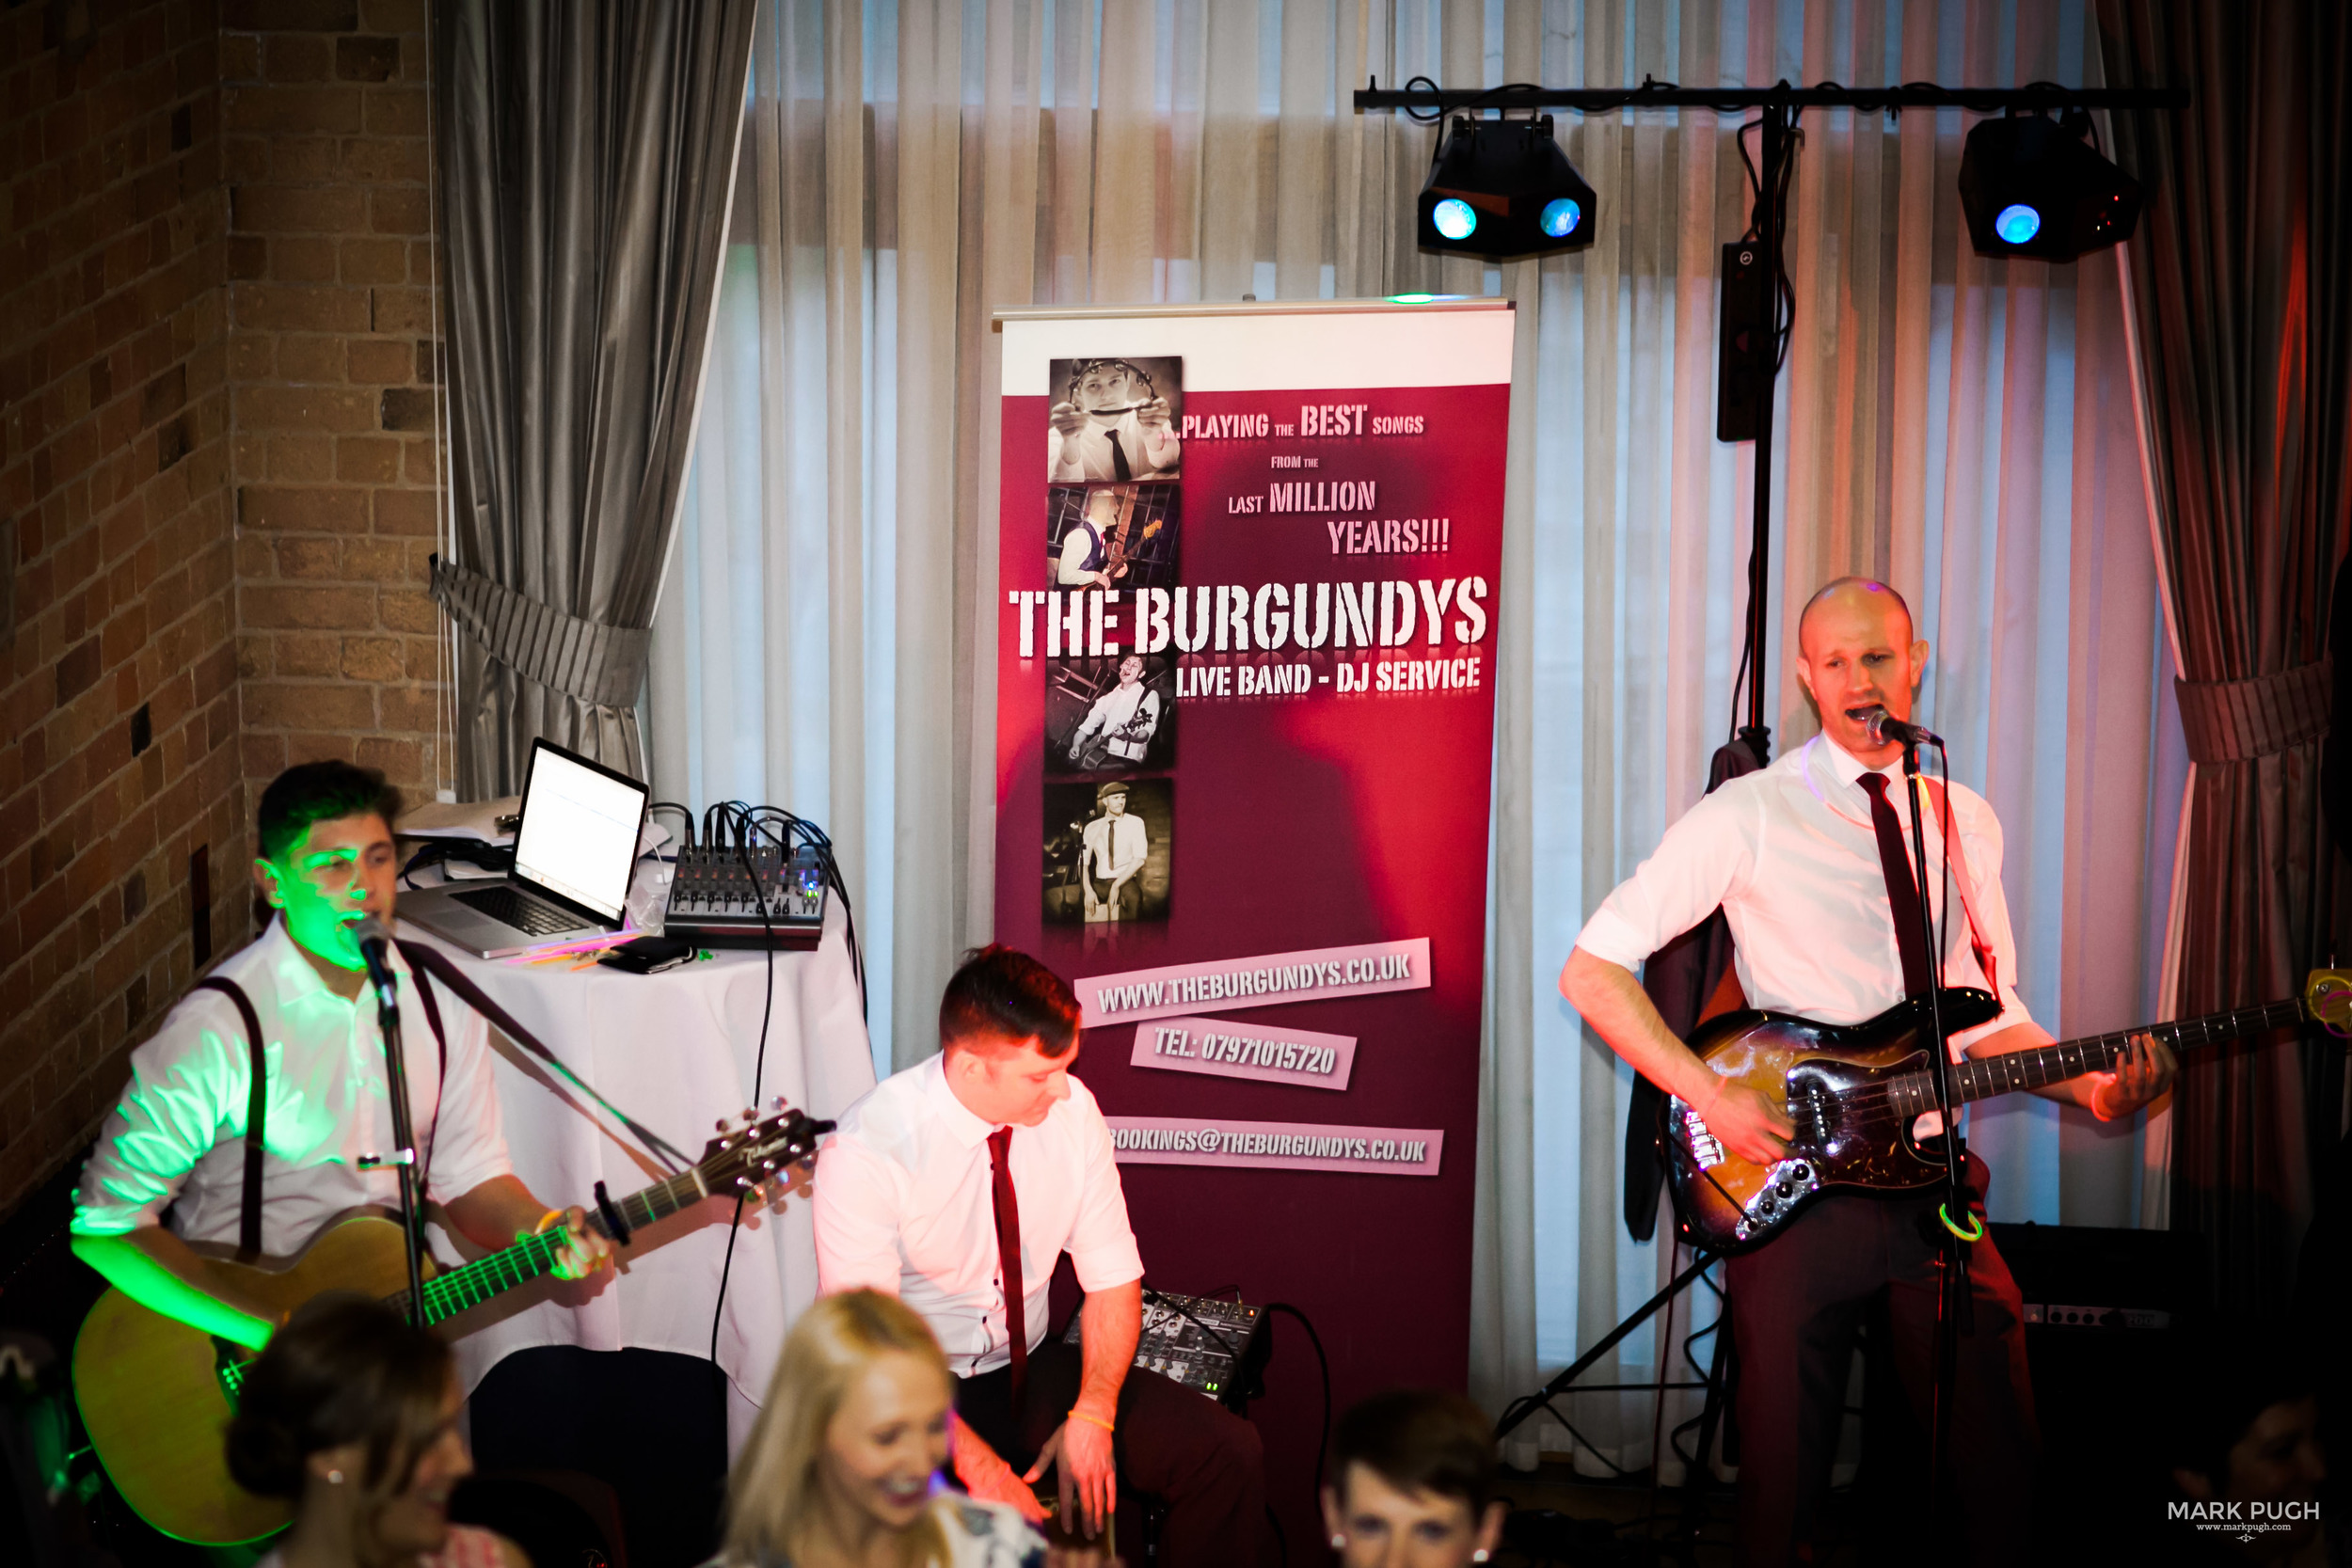 017 - Featured Business - The Burgundys based in Nottingham UK - Photography by www.markpugh.com -2.JPG